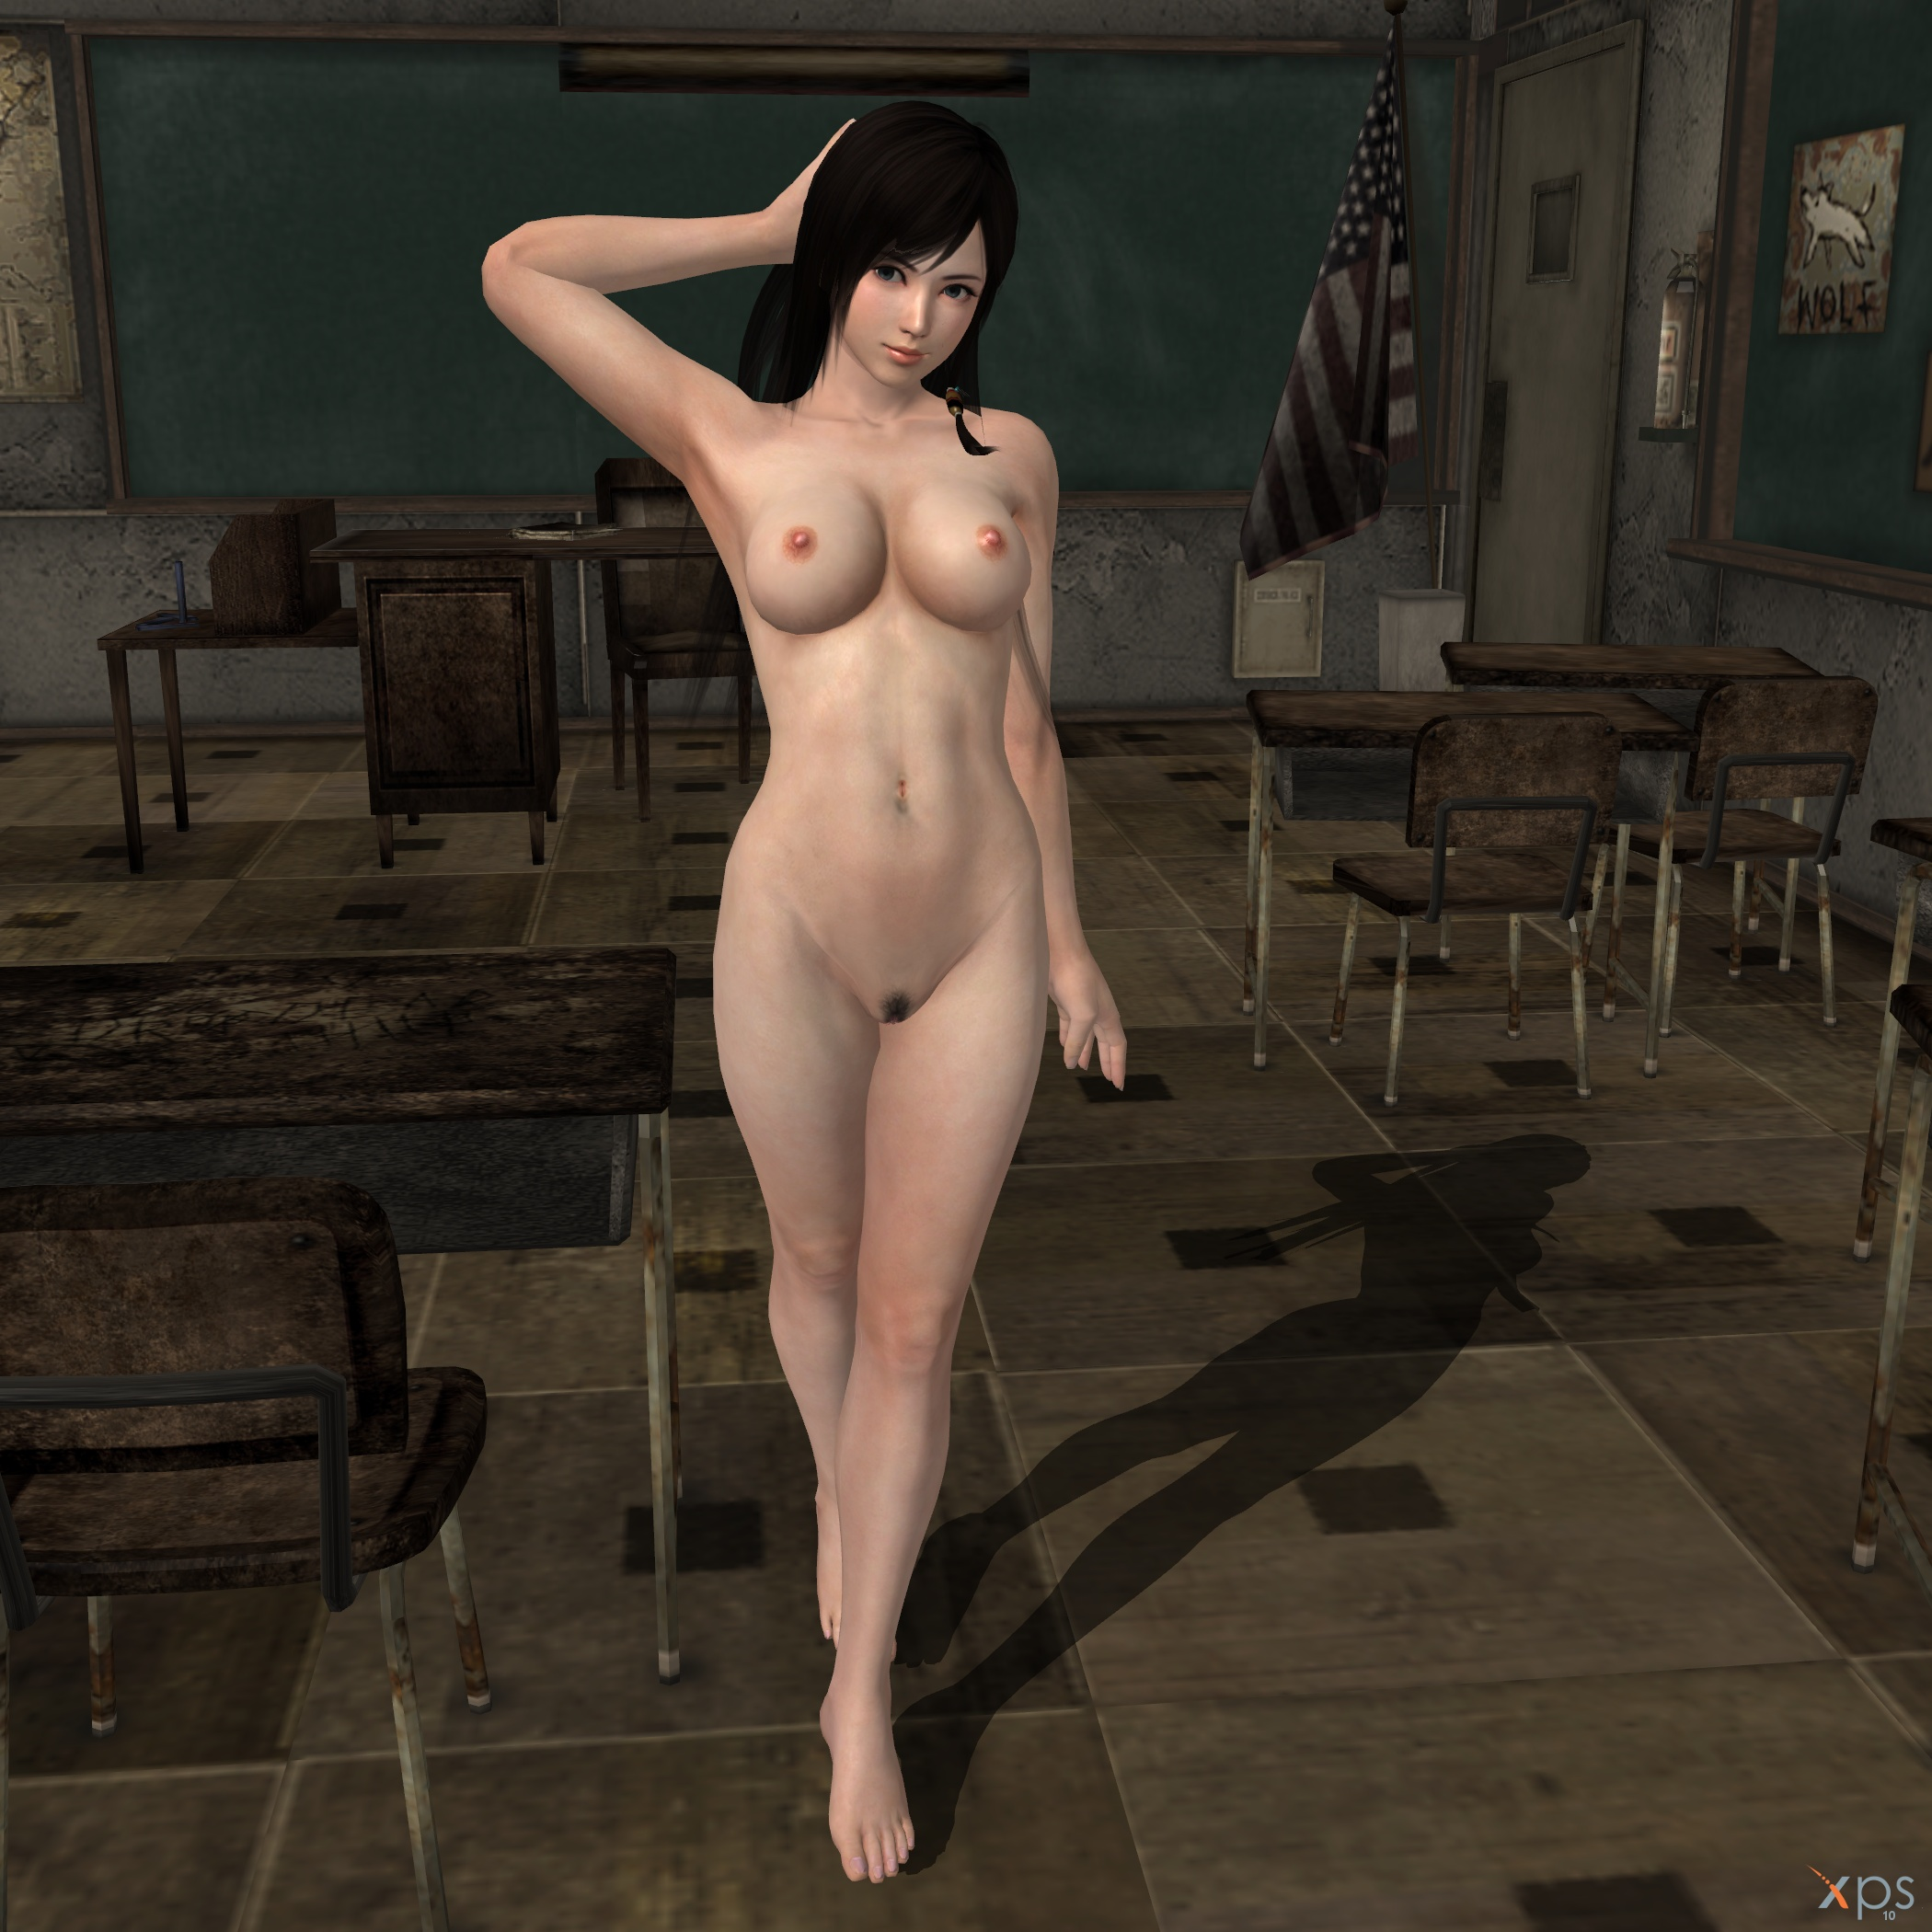 Doa5 nude exposed image